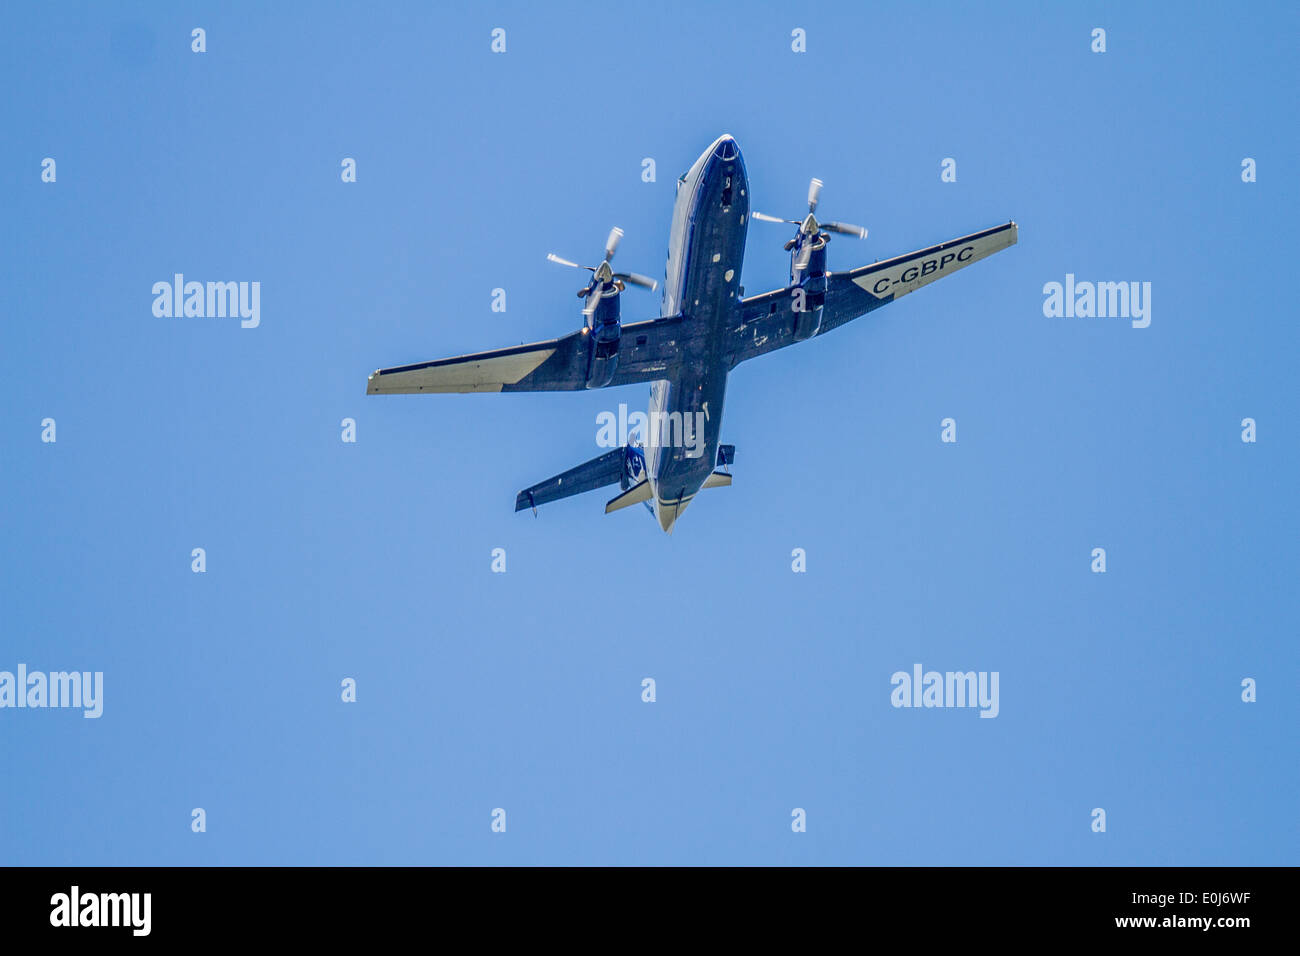 Beech 1900C-2. Twin prop airplane banking and overhead against a blue sky. - Stock Image